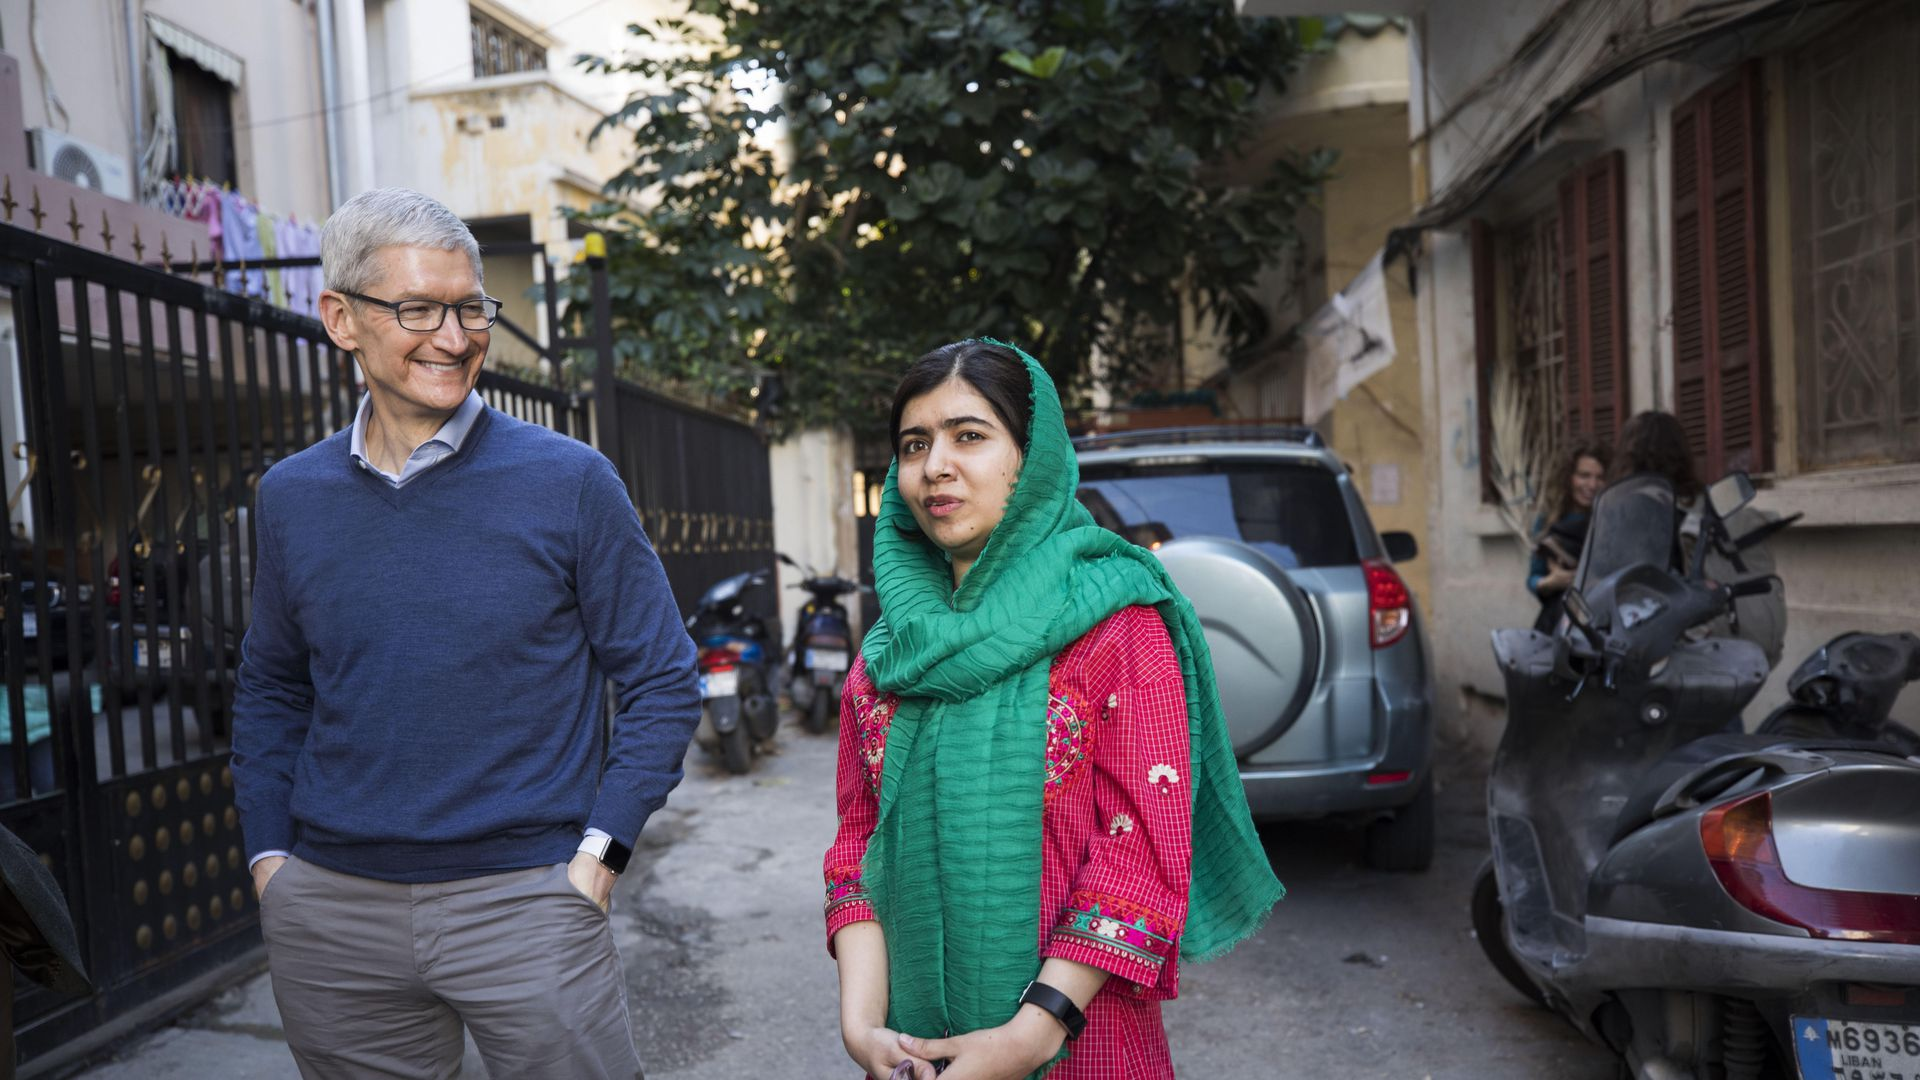 Tim Cook and Malala Yousafzai outside the home of a family with daughters attending school in Beirut supported by the Malala Fund